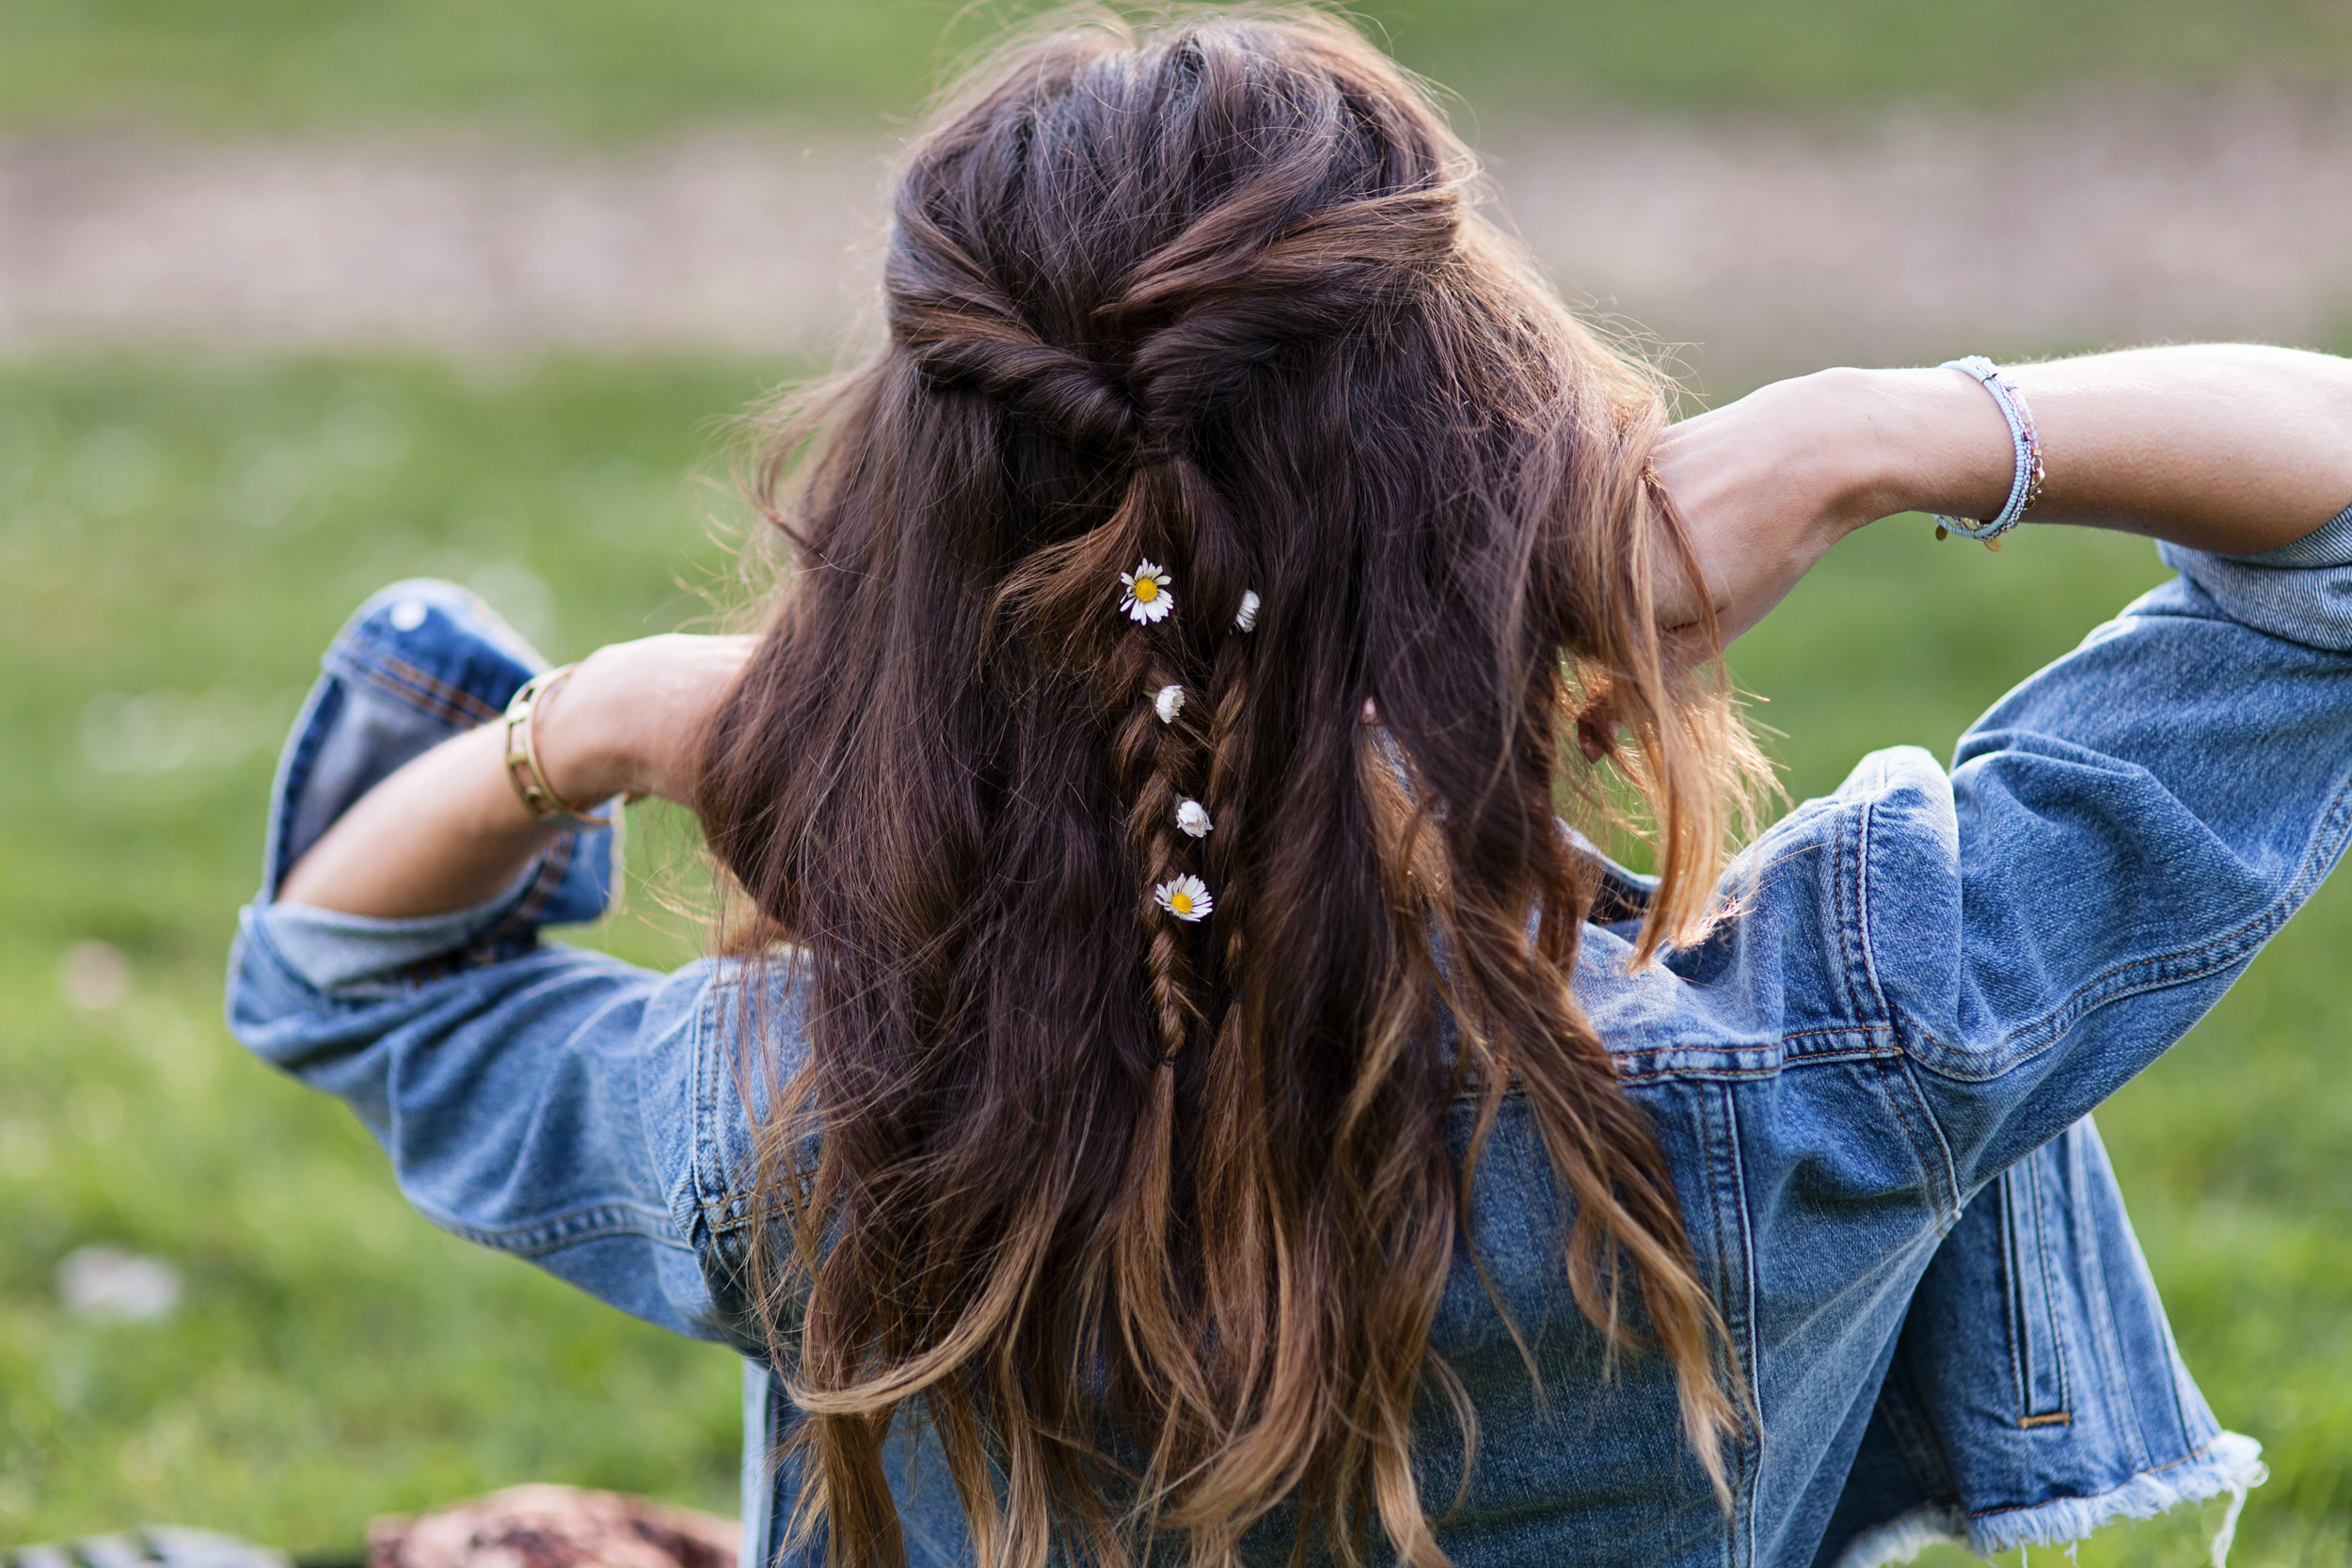 A Simple Step By Step Guide To Festival Hair Thanks To Tresemme